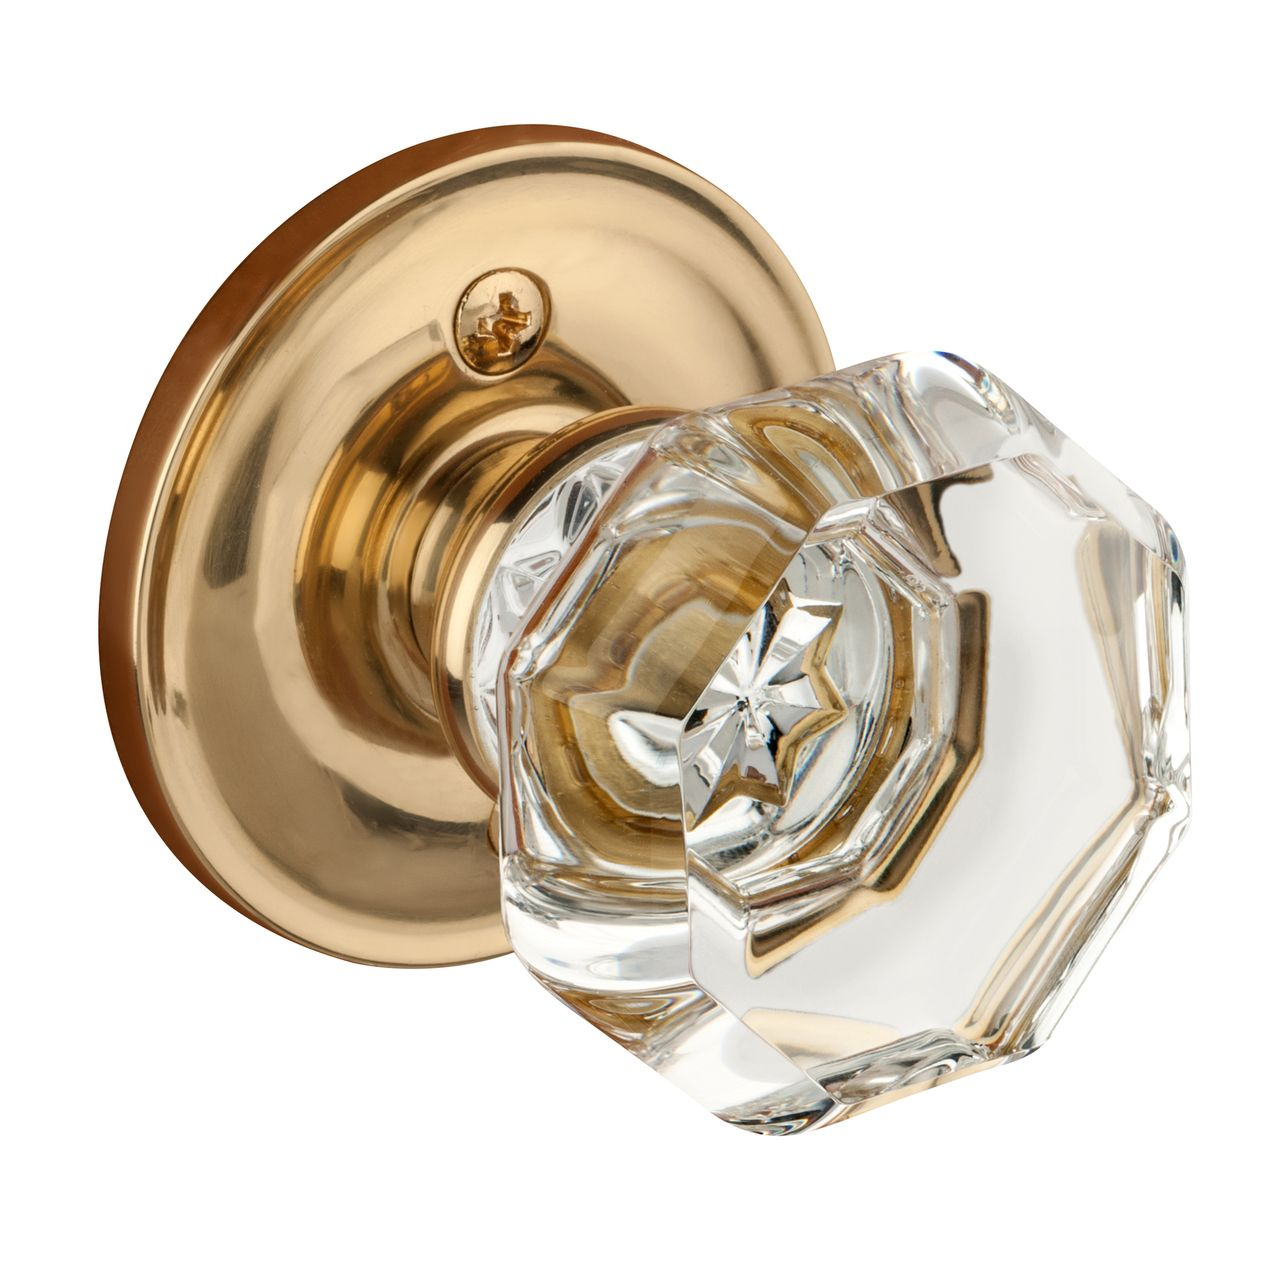 Dynasty Hardware Crystal 1830-ID-US3 Dummy Door Knob, Polished Brass